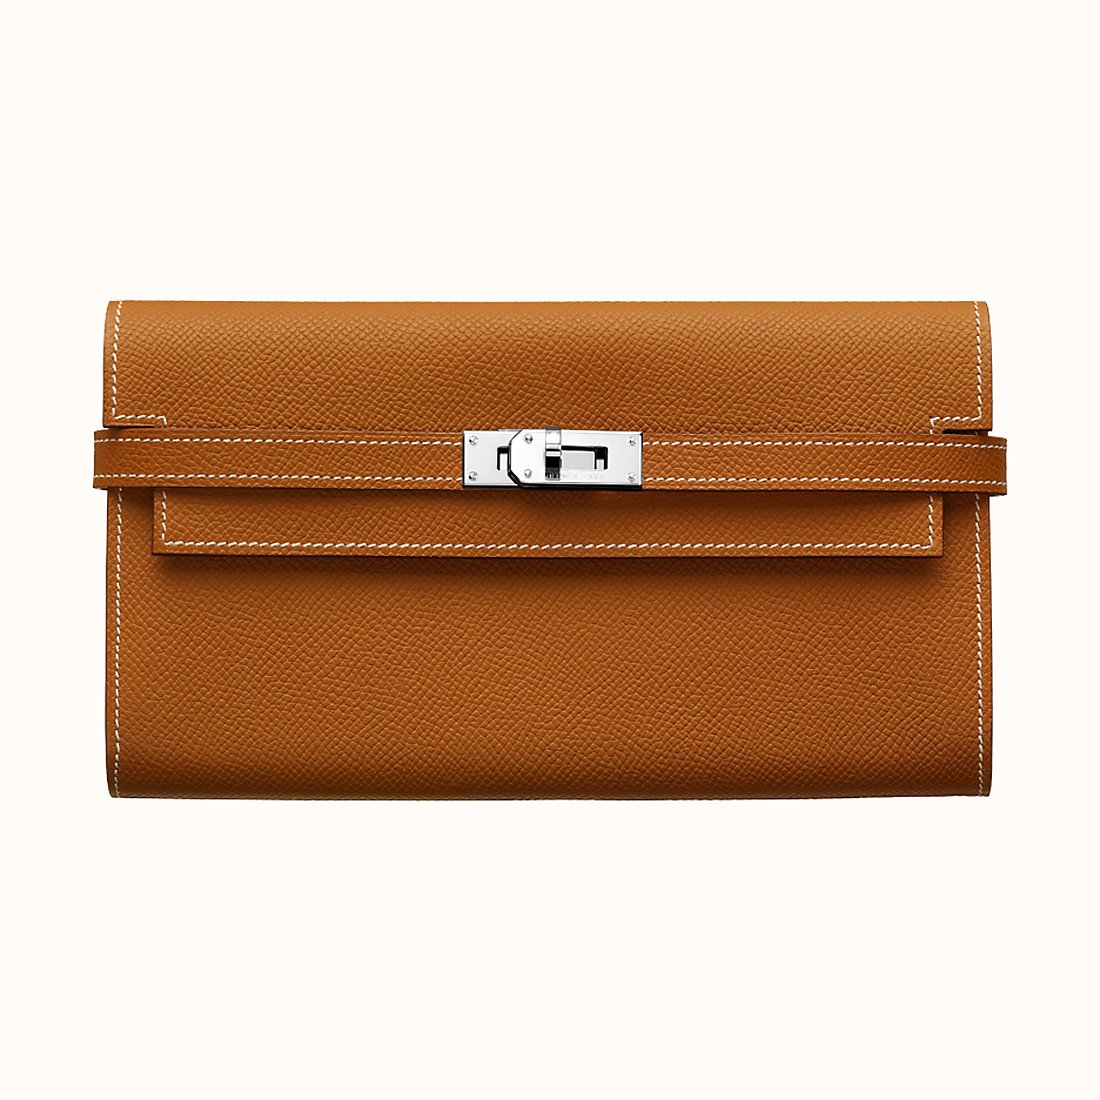 Hermes Kelly classic wallet CK37 Gold 金棕色 Epsom calfskin